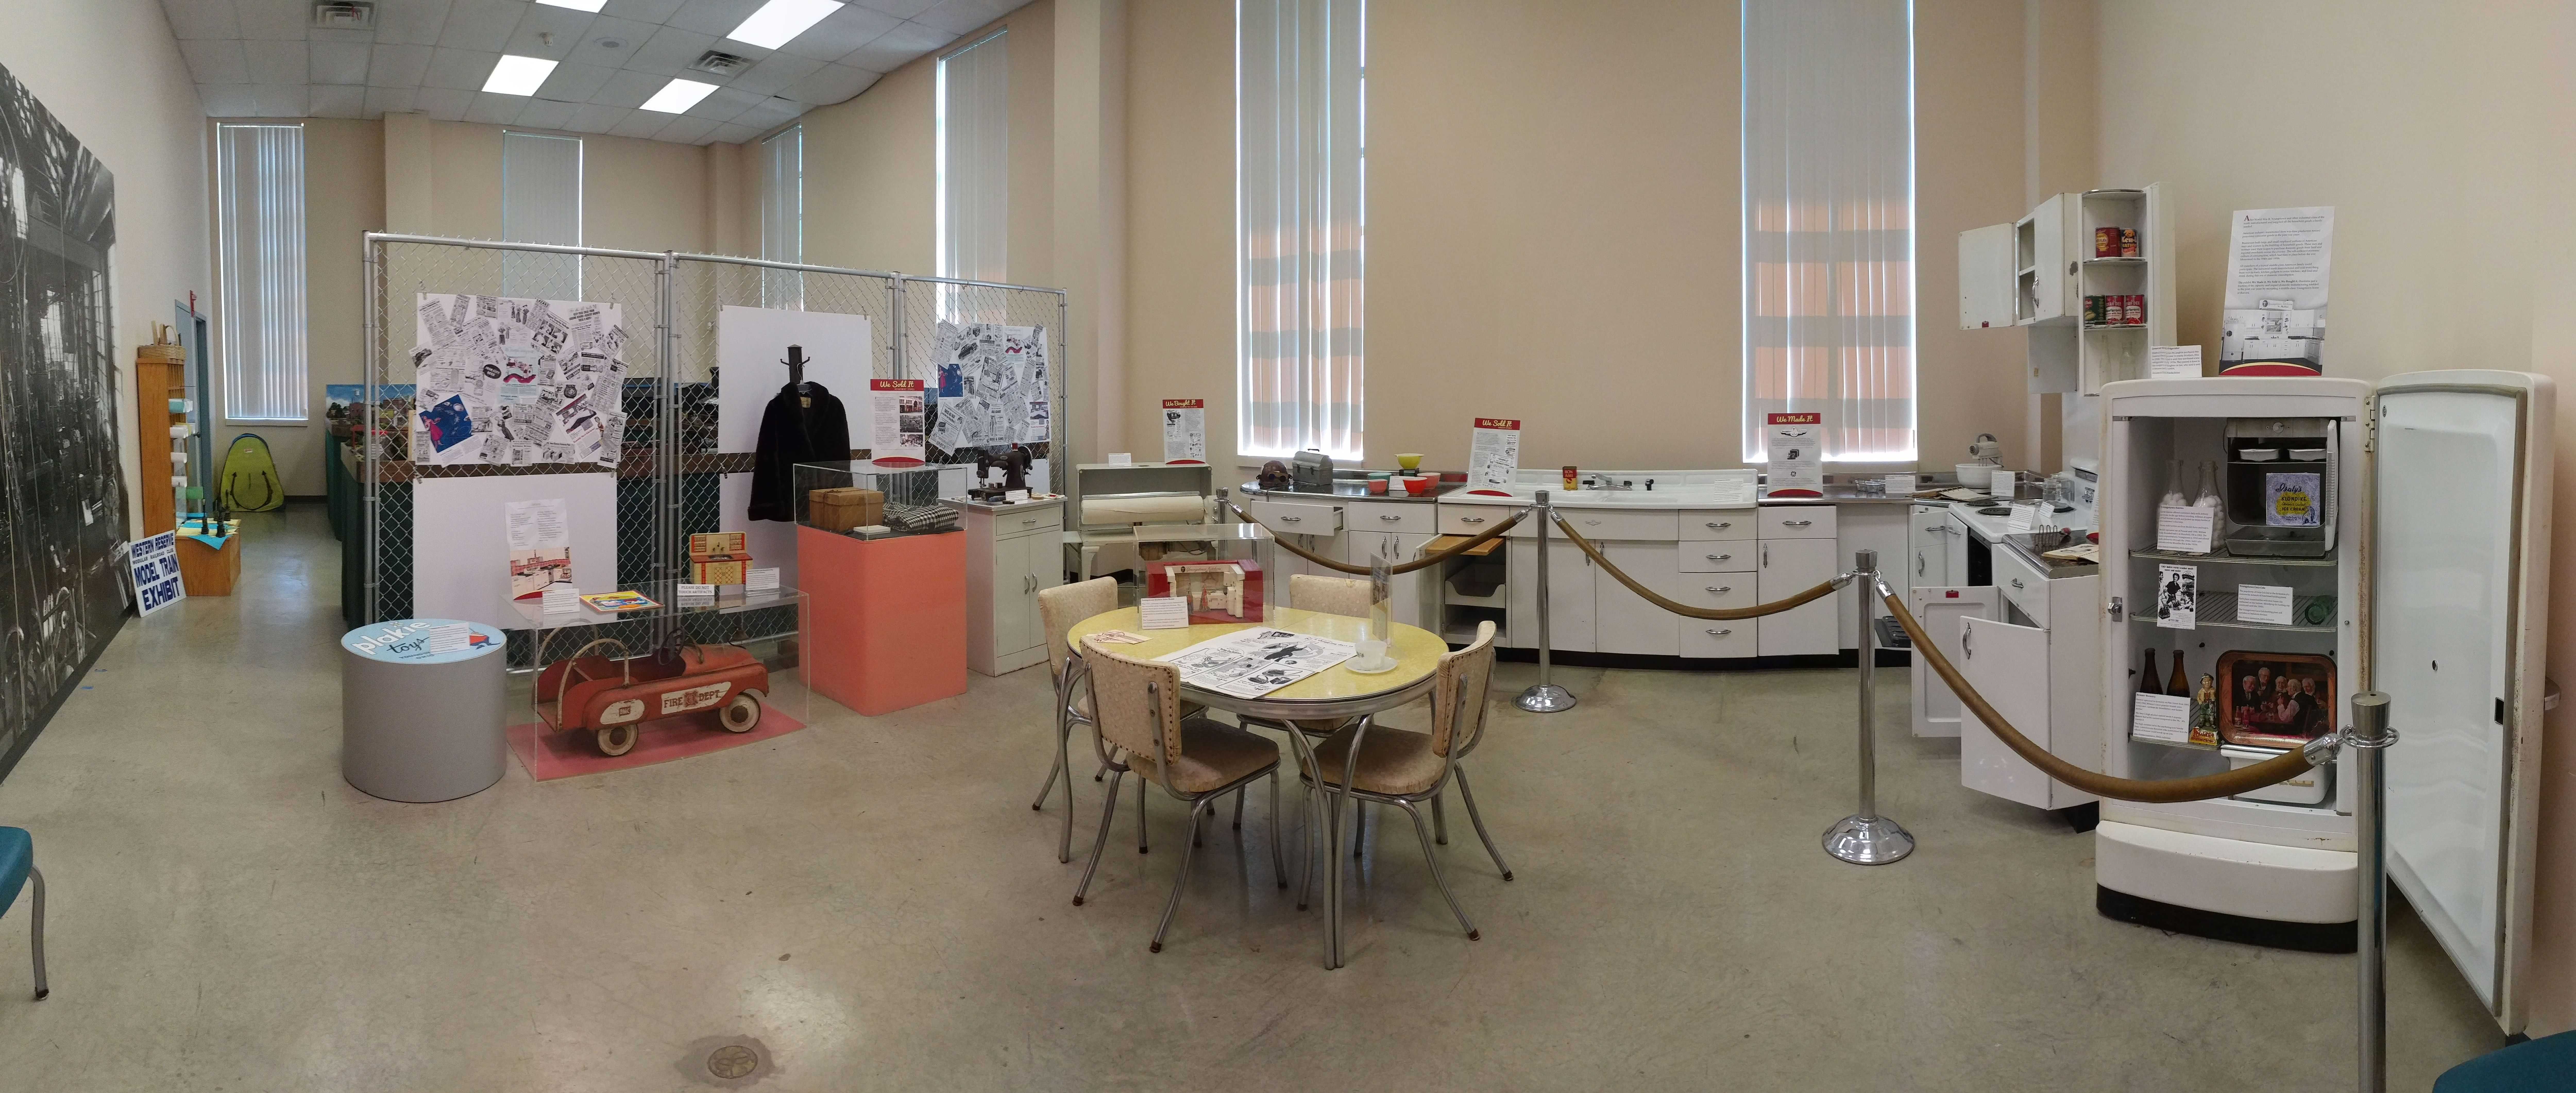 "Perhaps the most iconic and highly anticipated exhibit in the Museum in the temporary ""Youngstown Kitchen"" exhibit.